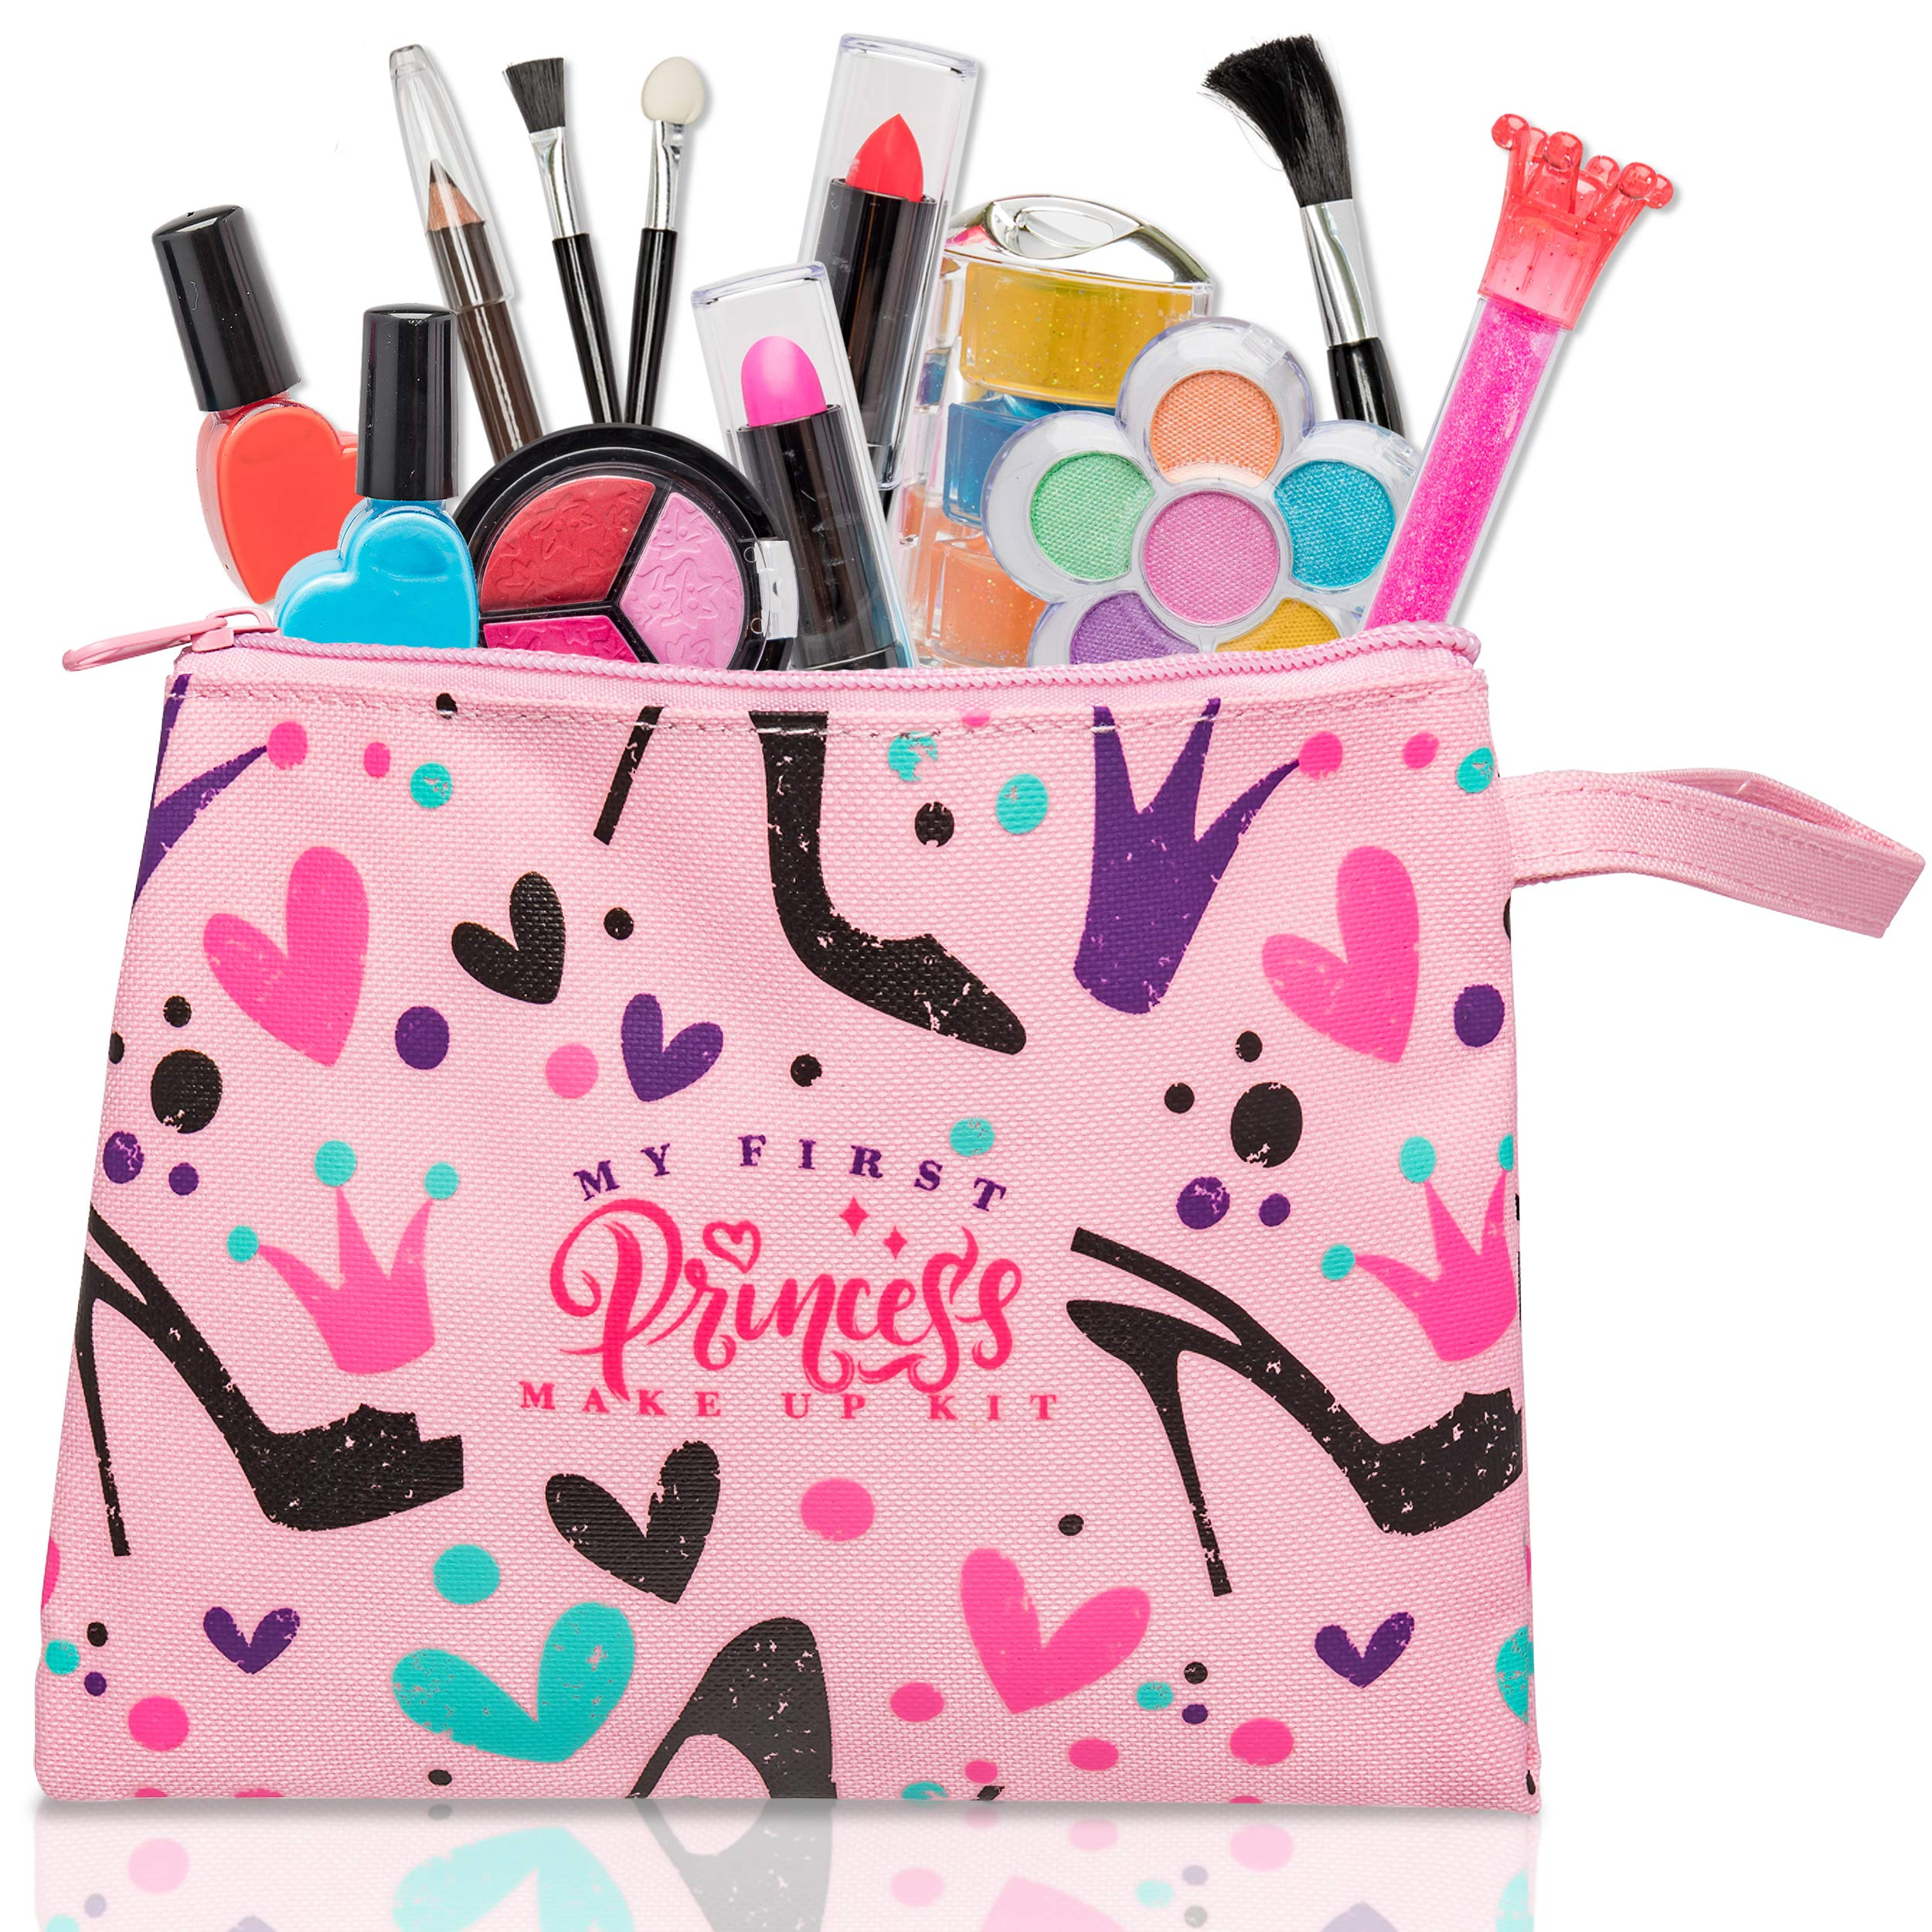 FoxPrint My First Princess Make Up Kit - 12 Pc Kids Makeup Set Washable Makeup For Girls These Makeup Toys for Girls Include All Your Princess Needs To Play Dress Up Comes with Stylish Bag